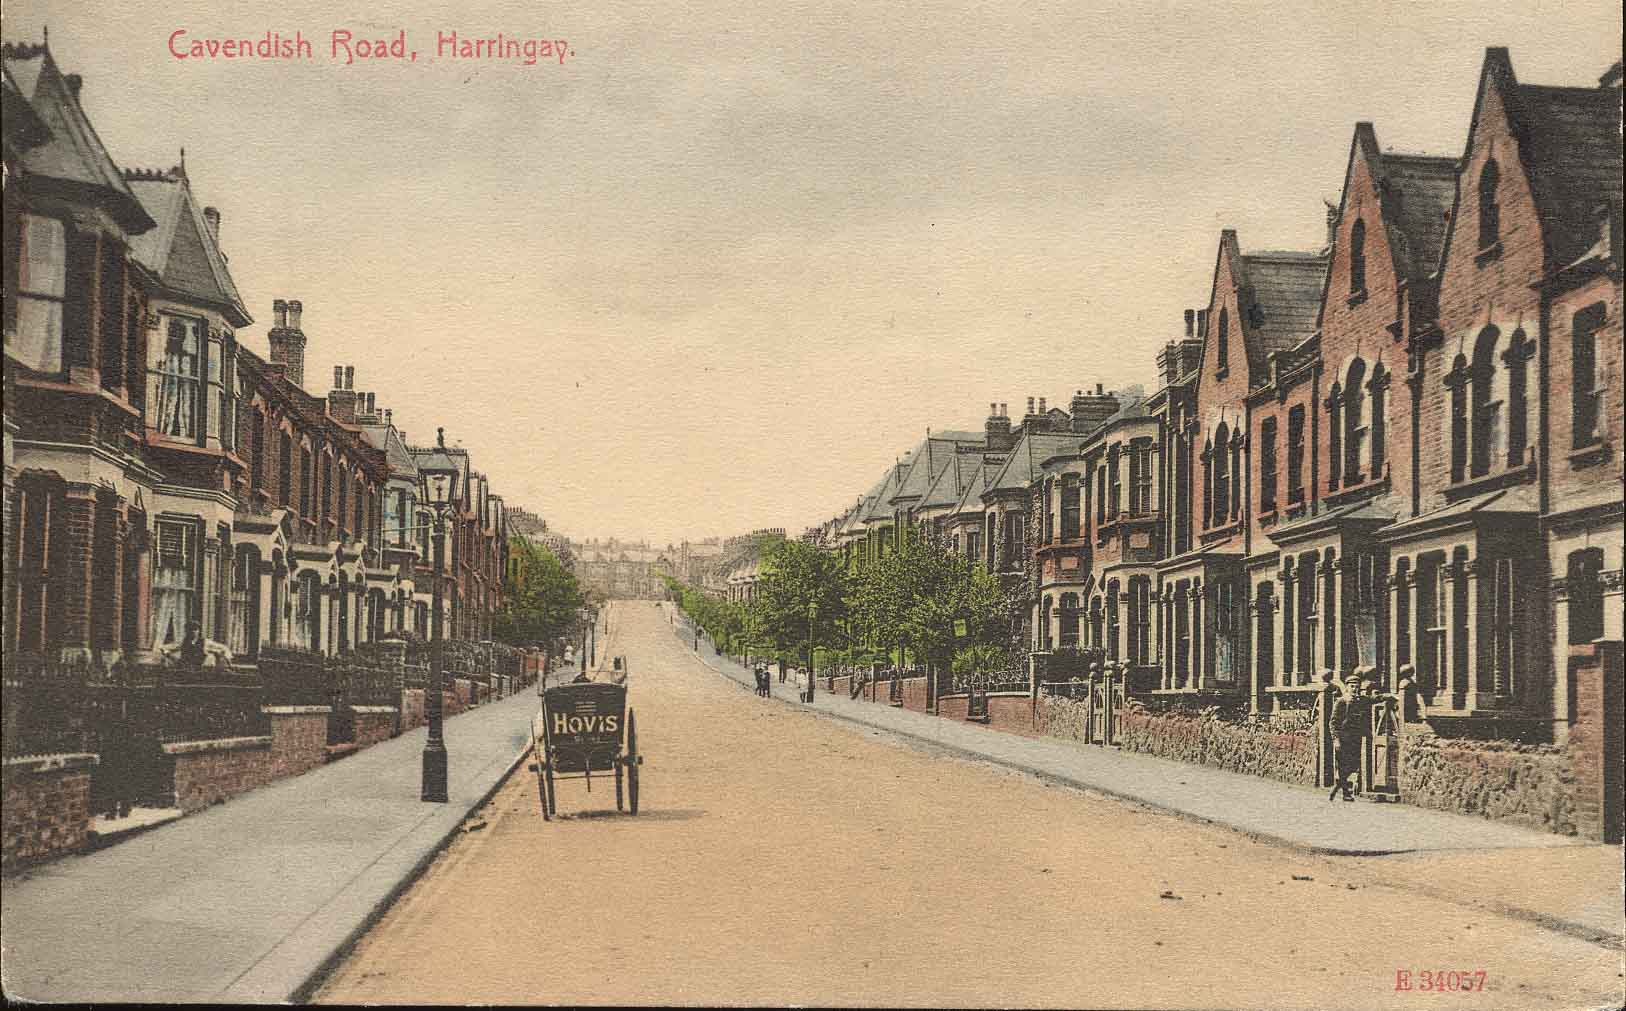 Cavendish Road, Harringay